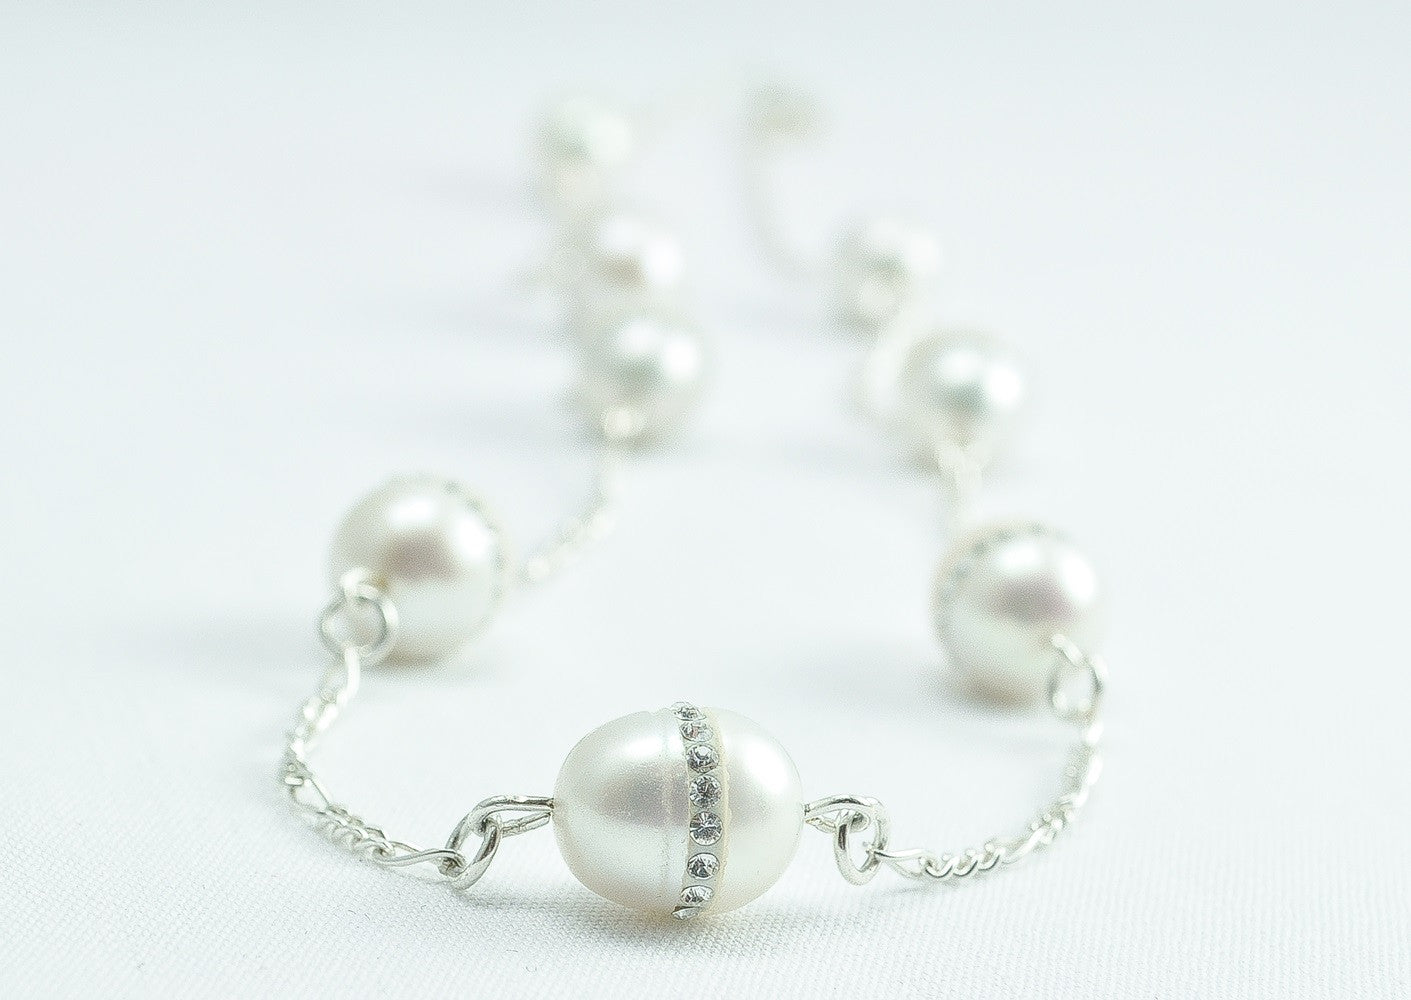 Freshwater pearl necklace with Swarovski crystal inlay